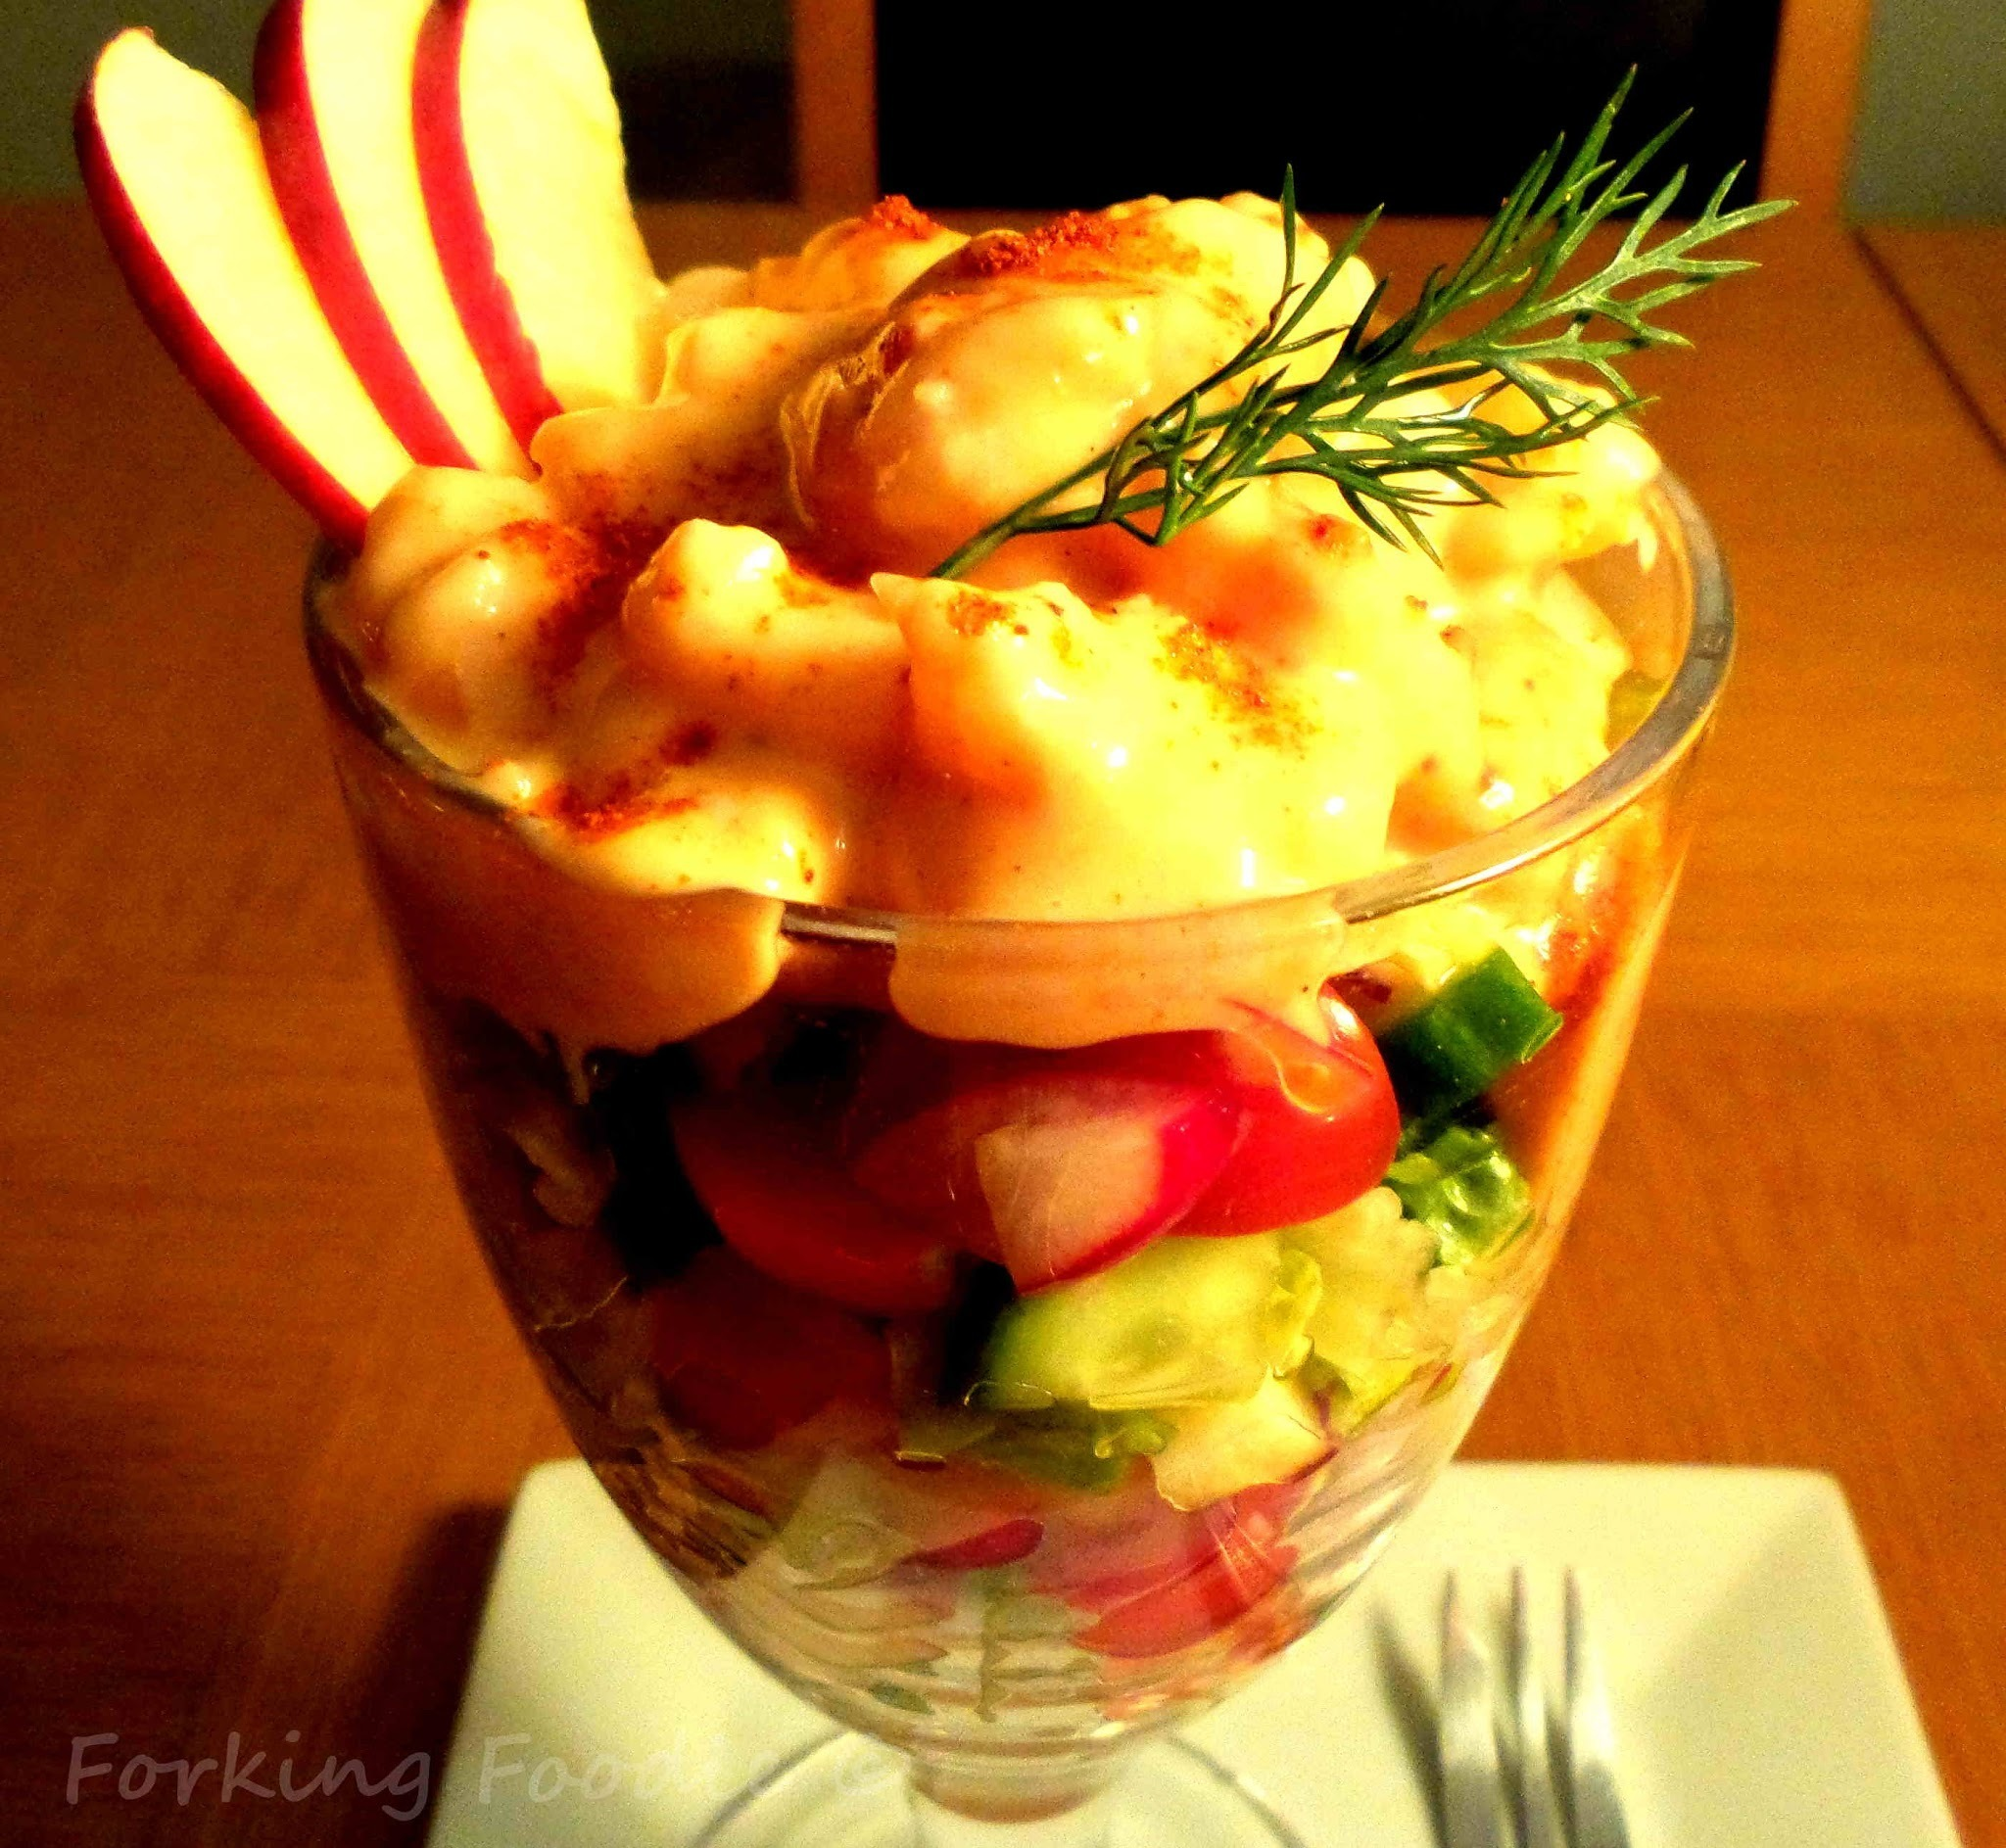 Retro-tastic Prawn Cocktail Salad